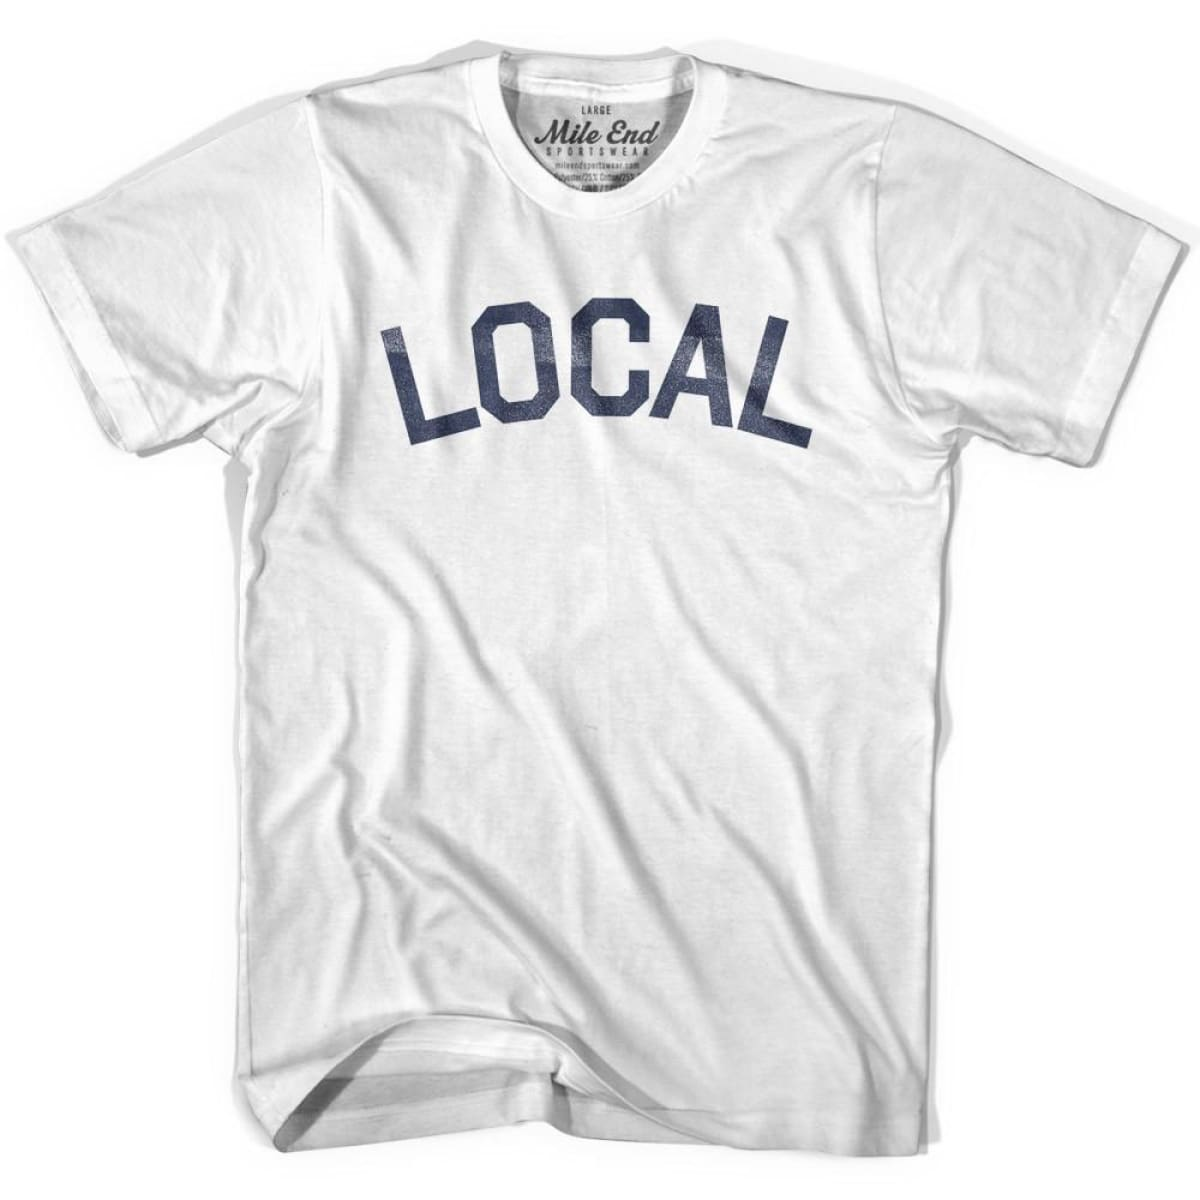 Local City Vintage T-shirt - White / Youth X-Small - Mile End City